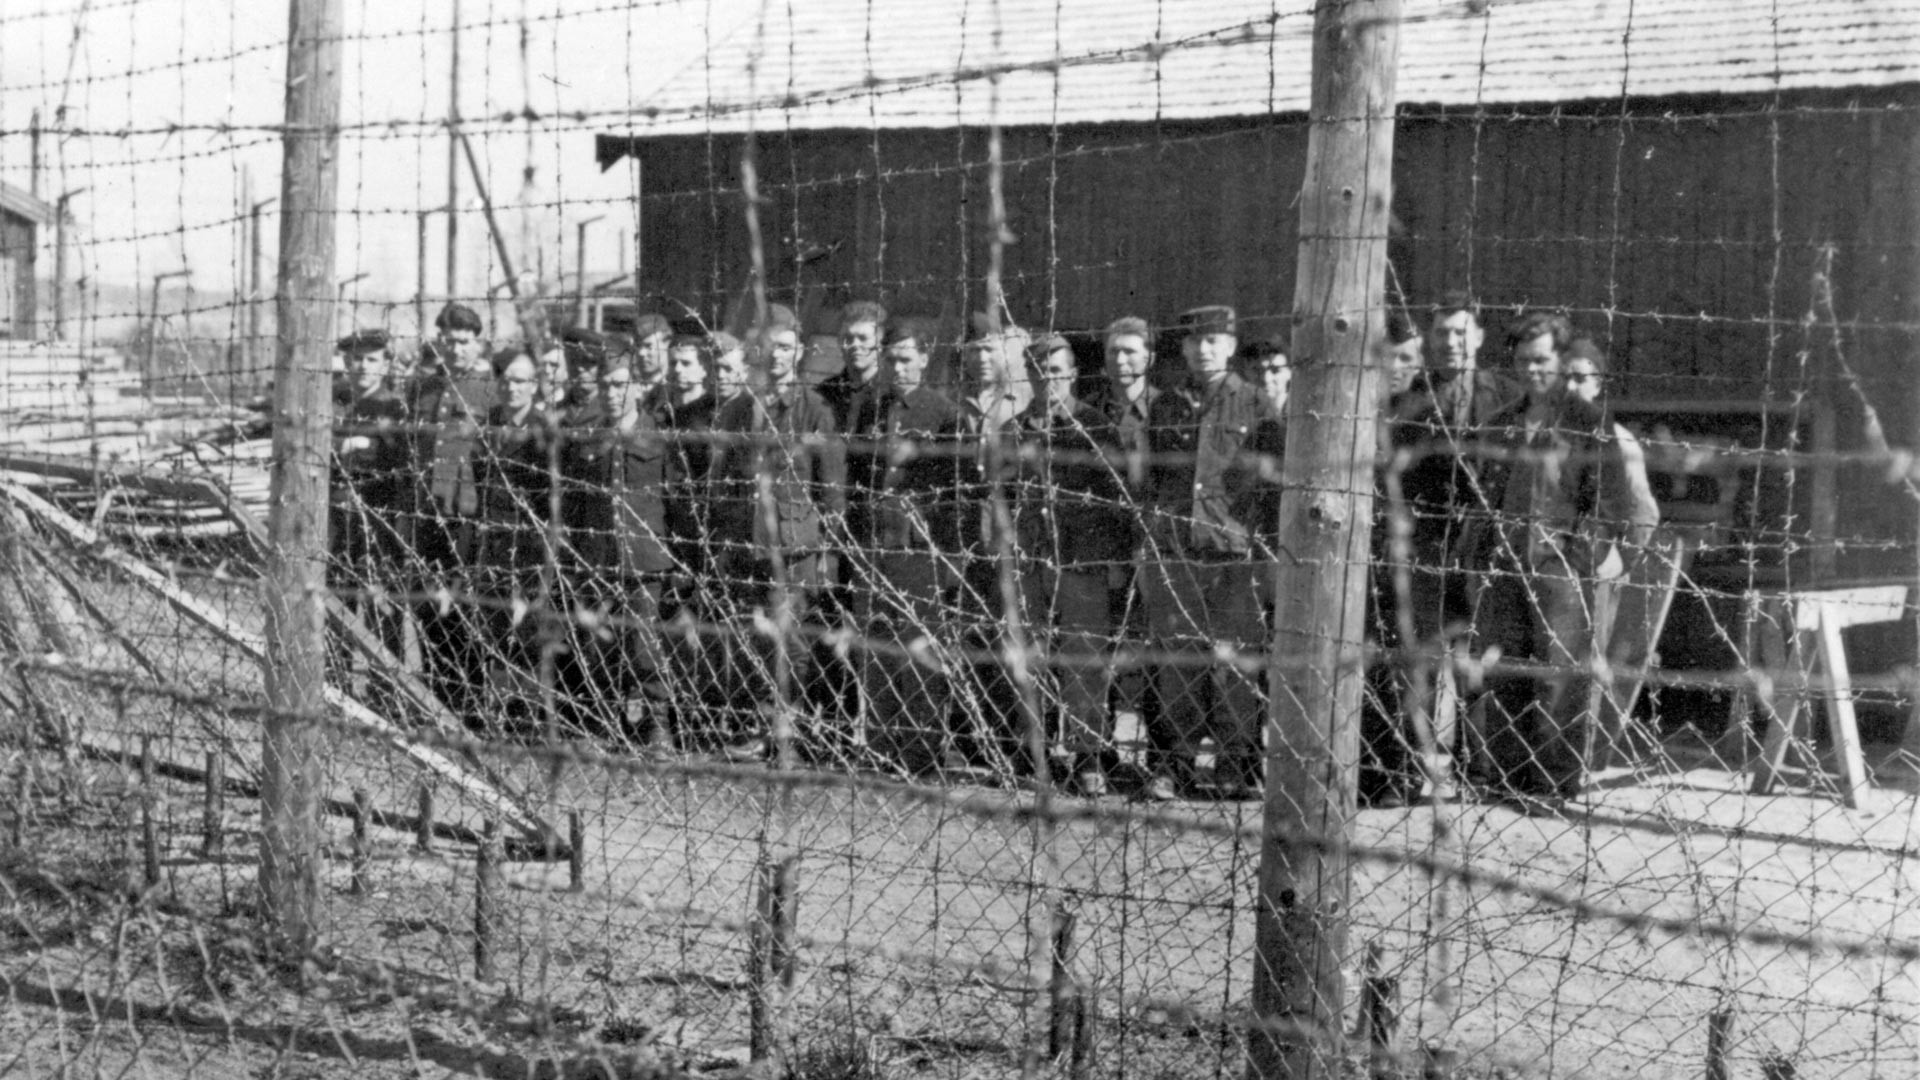 Soviet prisoners of war behind barbed wire at Falstad camp.